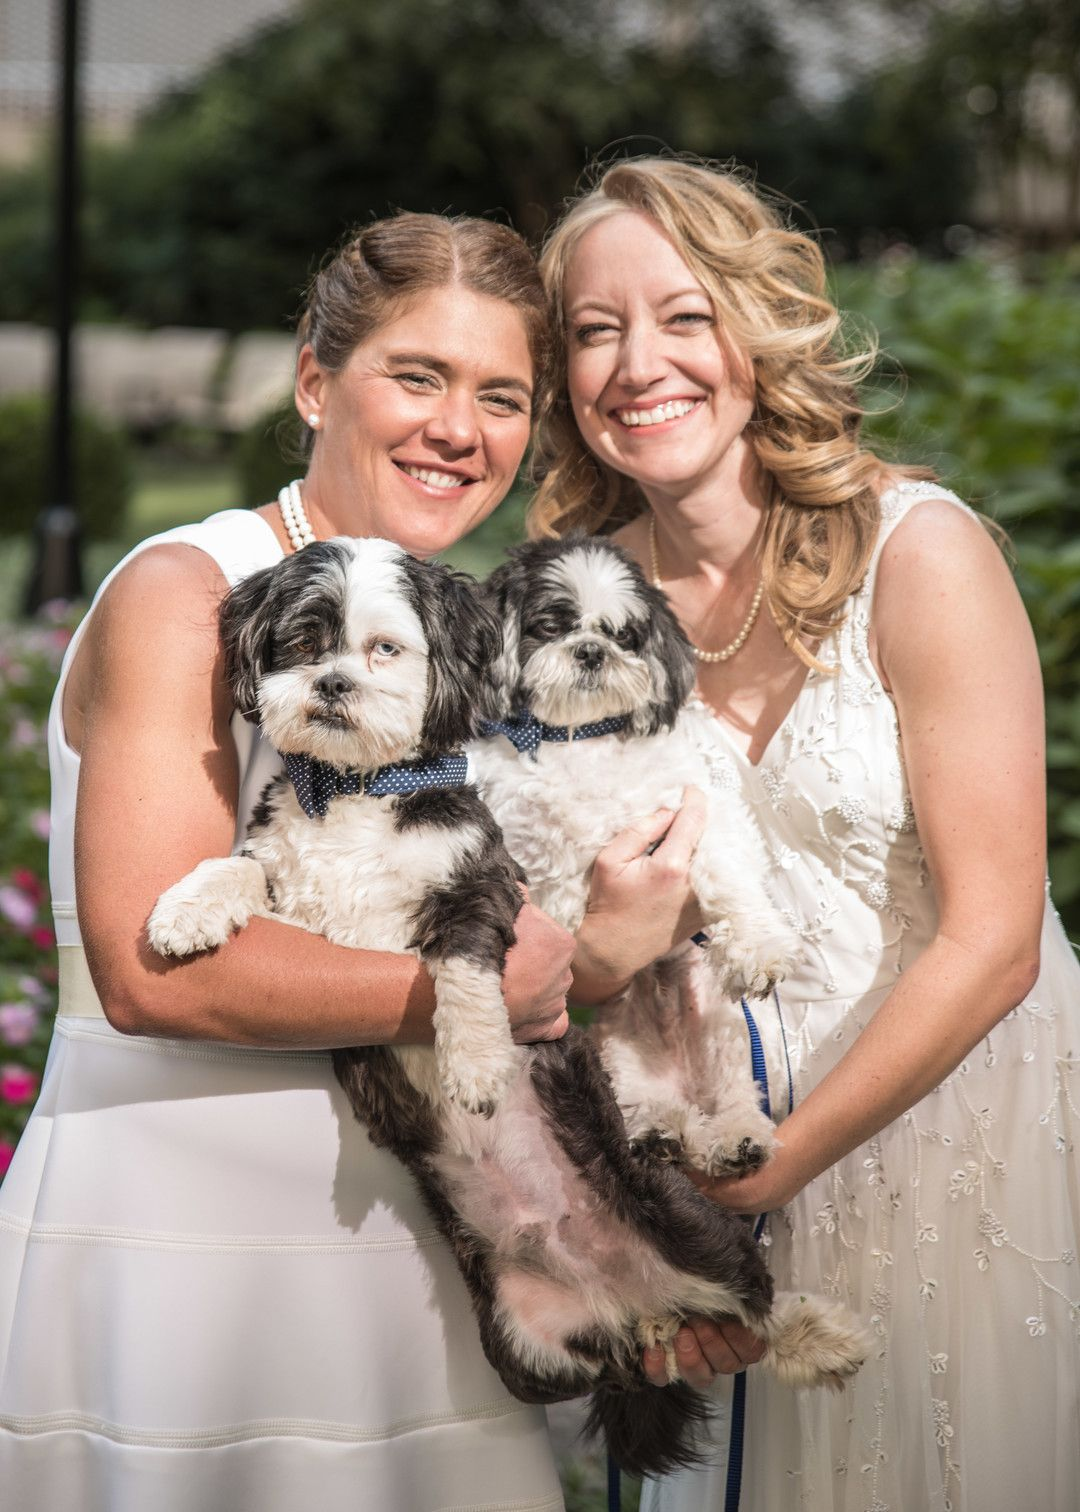 This couple had to move their wedding plans to evacuate a hurricane two  brides classic white dresses small dogs outdoor home wedding